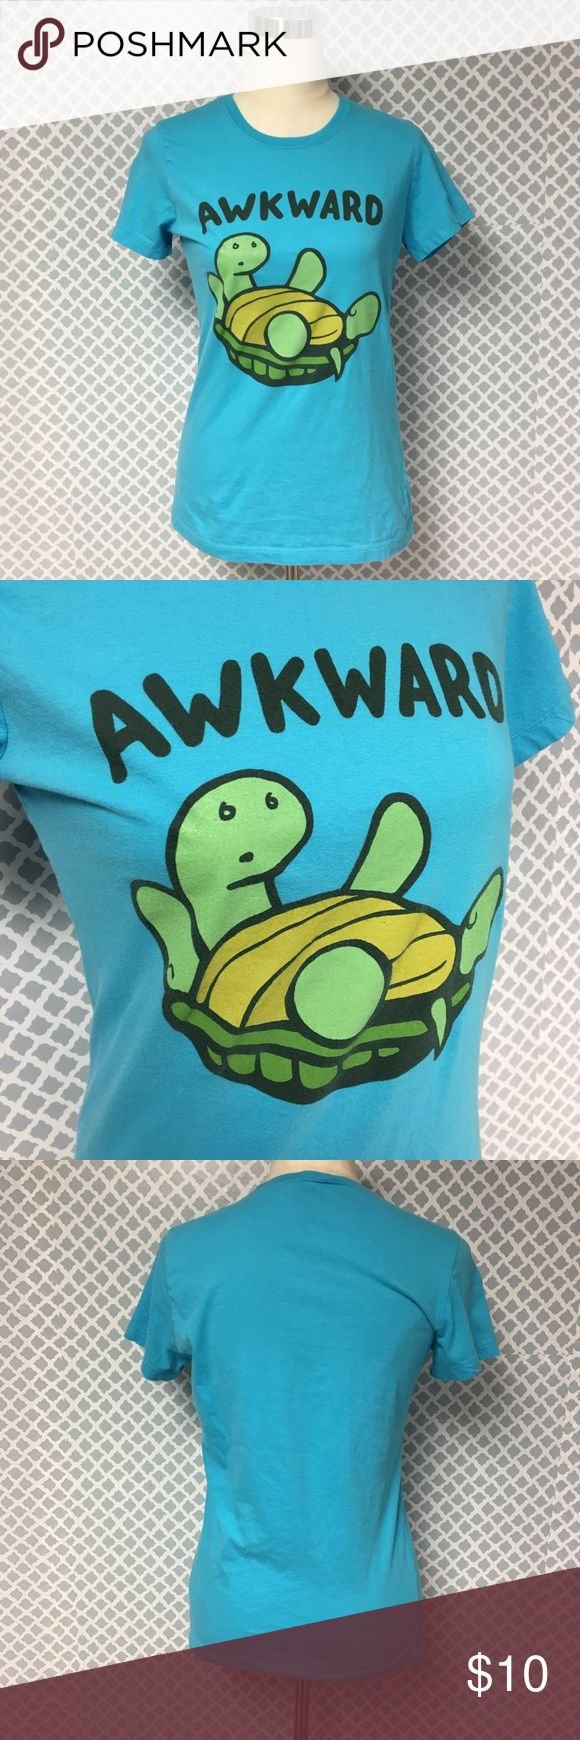 Awkward Turtle Graphic Tee 🔘Description: Super cute awkward T Shirt with turtle stuck on his back. Women's size medium  🔘Condition: Very Good   🔘Material: 100% Cotton               Pit to Pit measures 18 inches and shoulder to hem measures 25.5 inches                 Inventory: C    ⭐️ 15% Off All Bundles! 🛍    💞Thanks for stopping by! 😘 Tops Tees - Short Sleeve